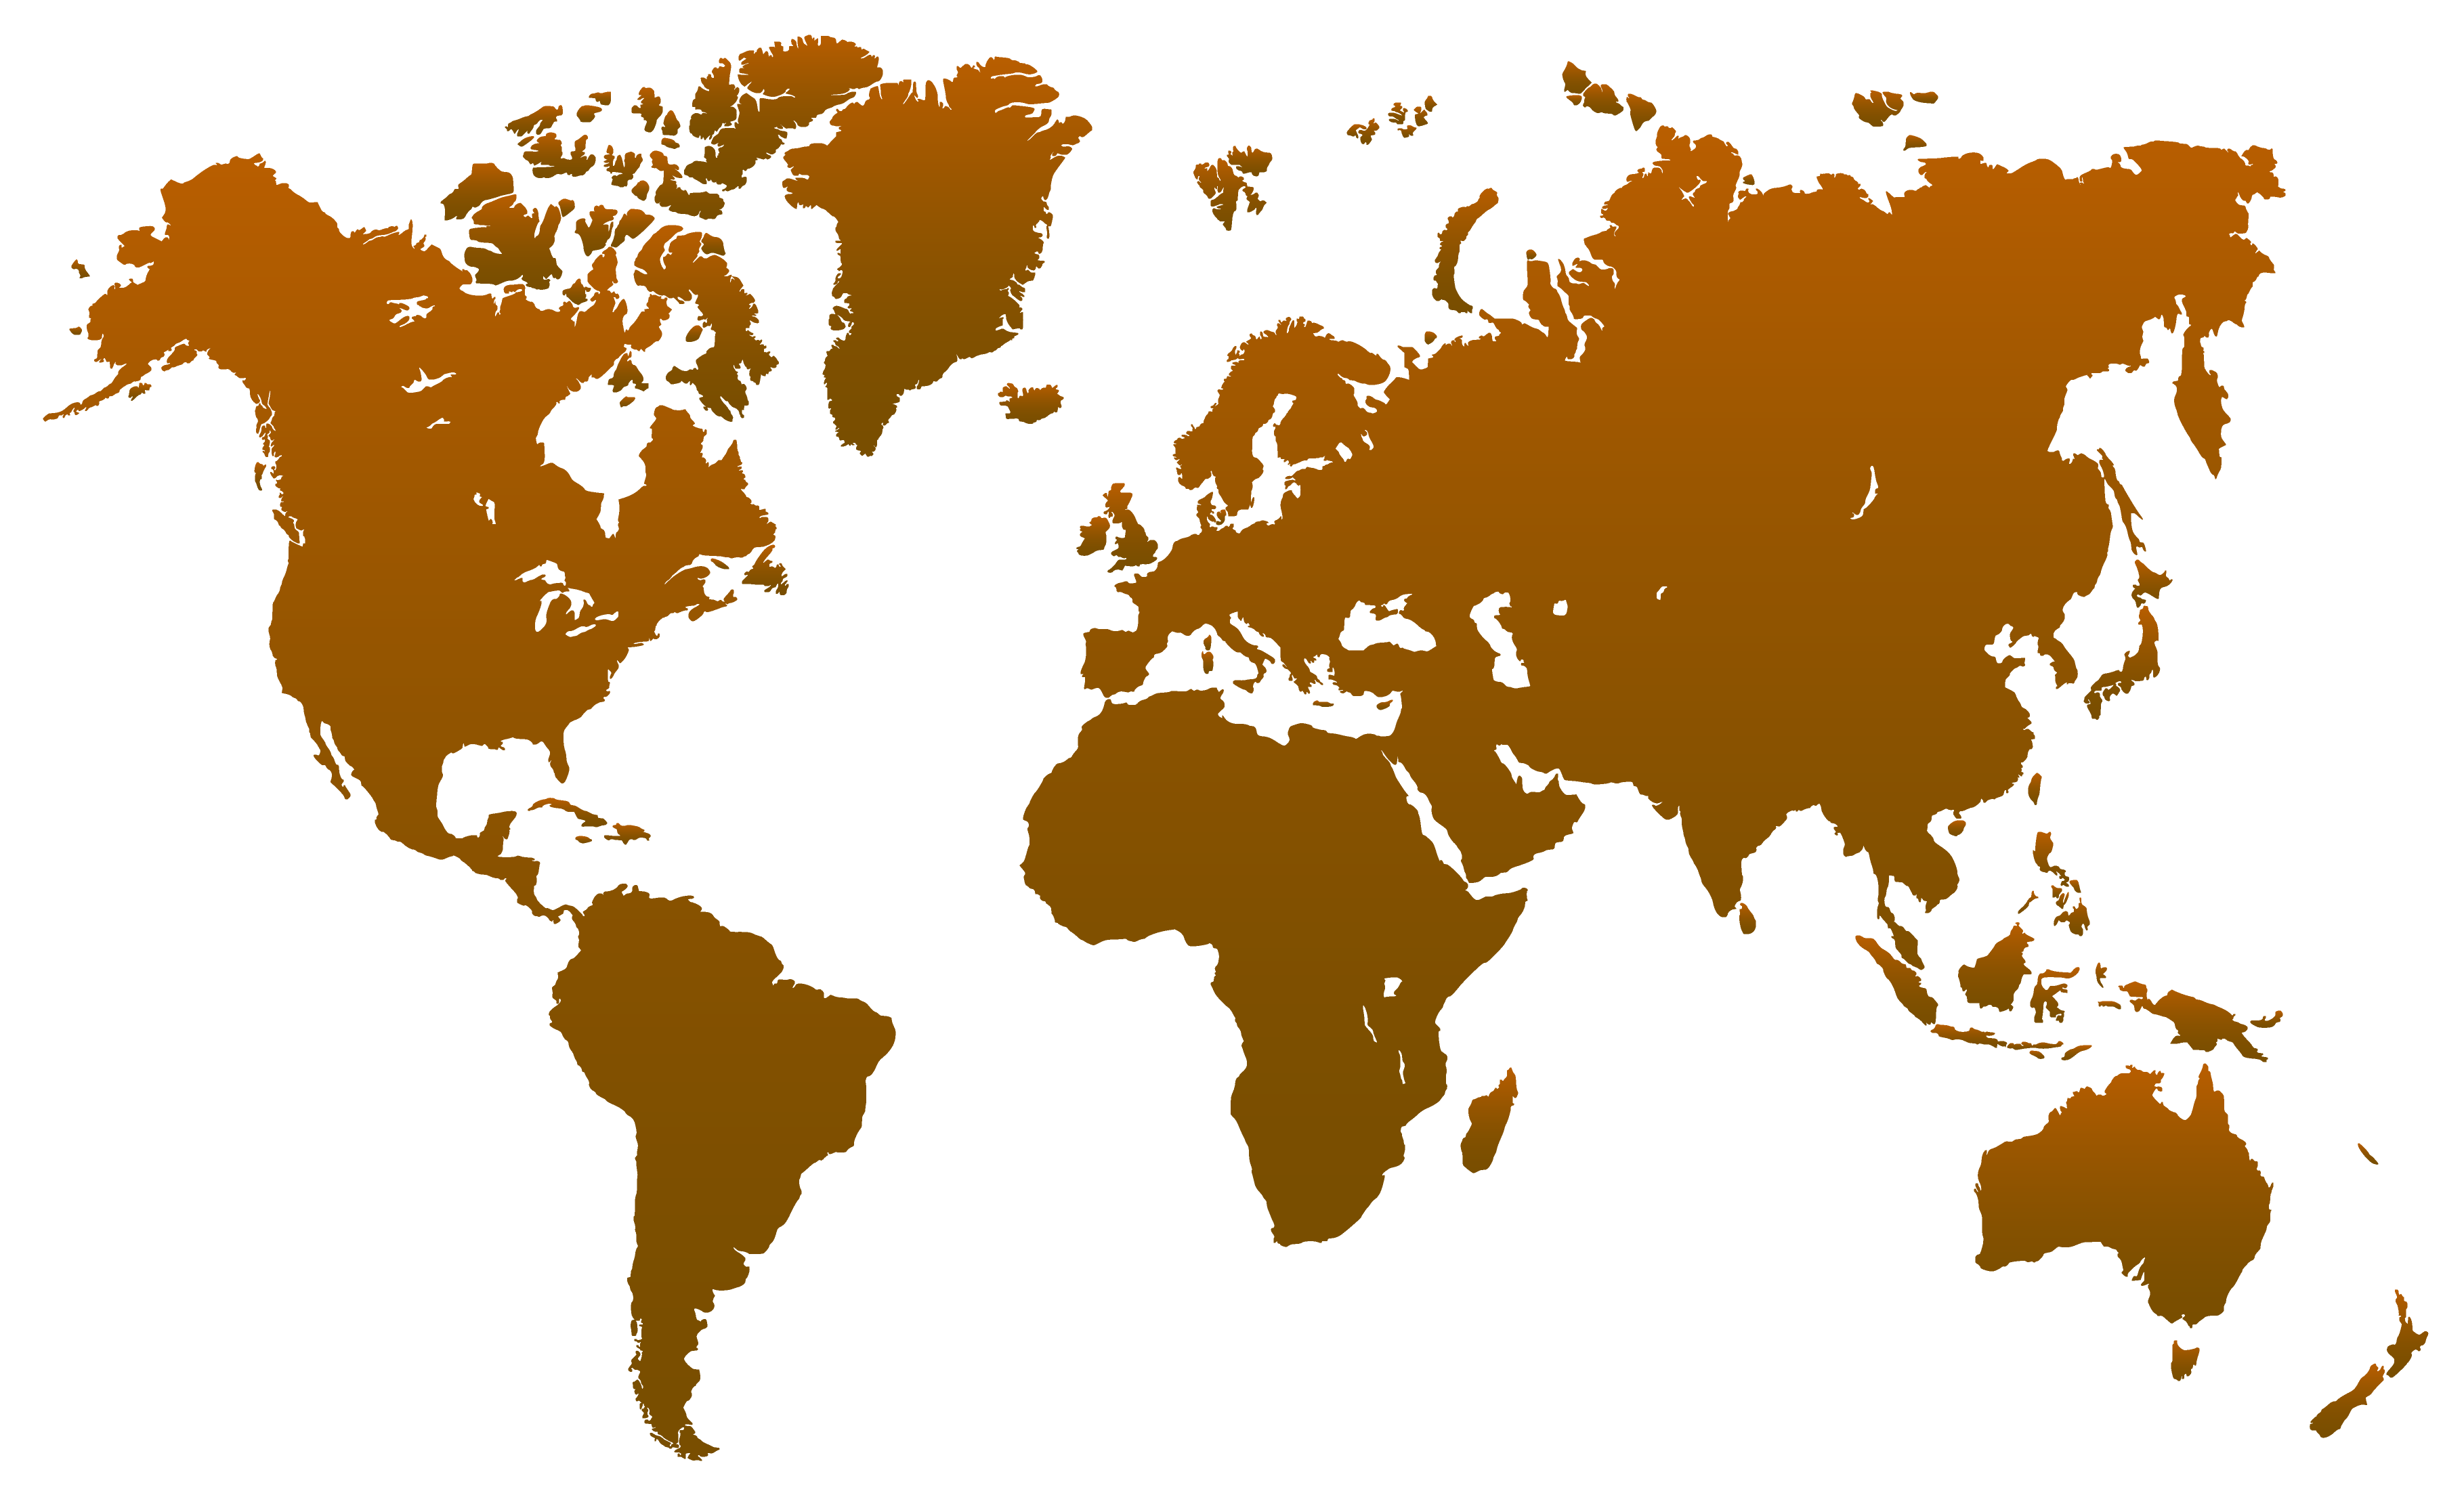 World map clipart png png library download World Map transparent PNG - StickPNG png library download